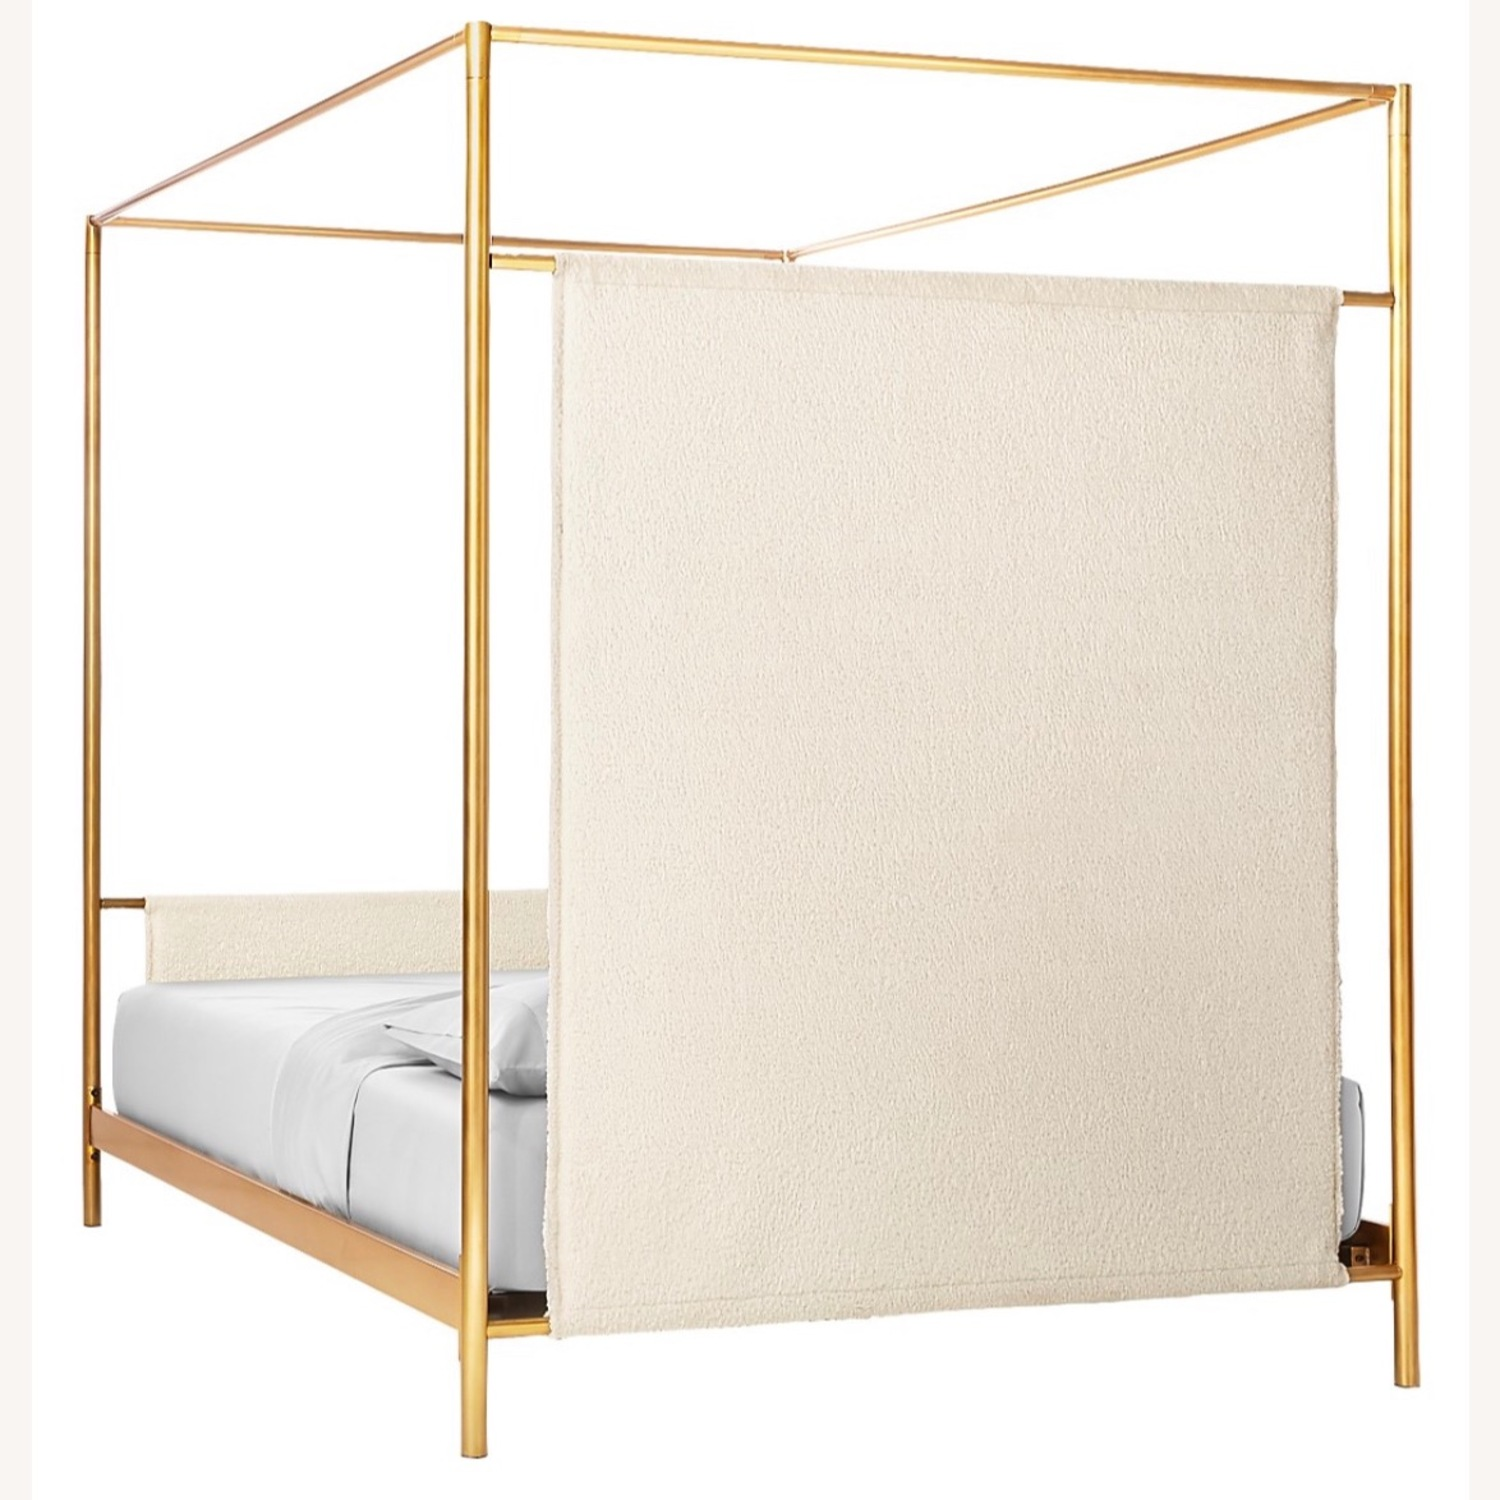 CB2 Odessa Shearling Canopy King Bed - image-2